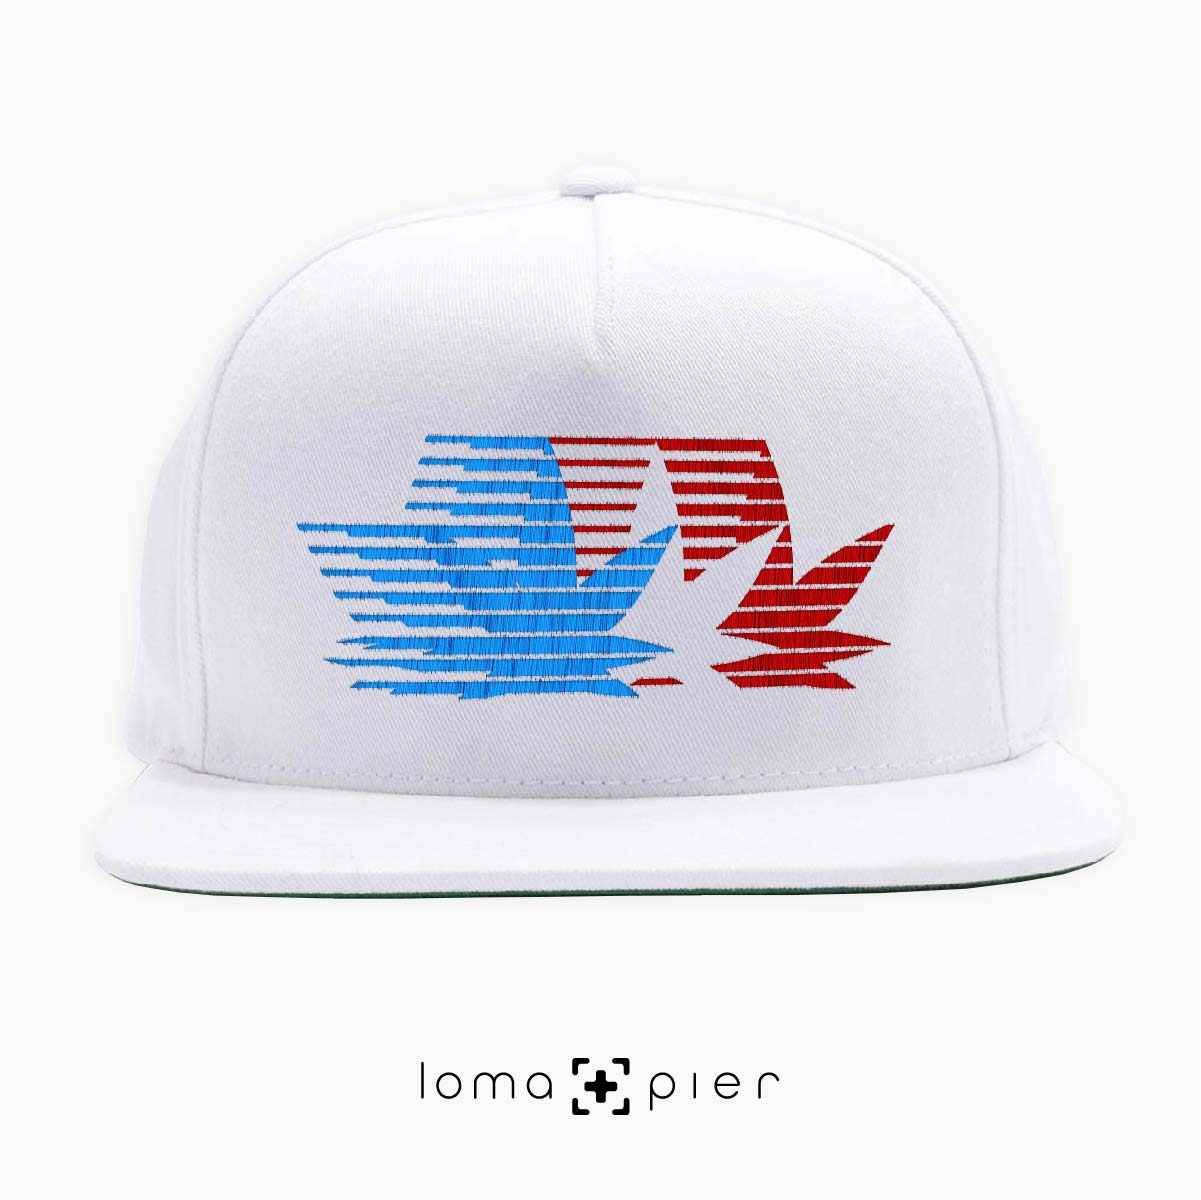 snapback cap with retro weed olympics design by loma+pier hat shop